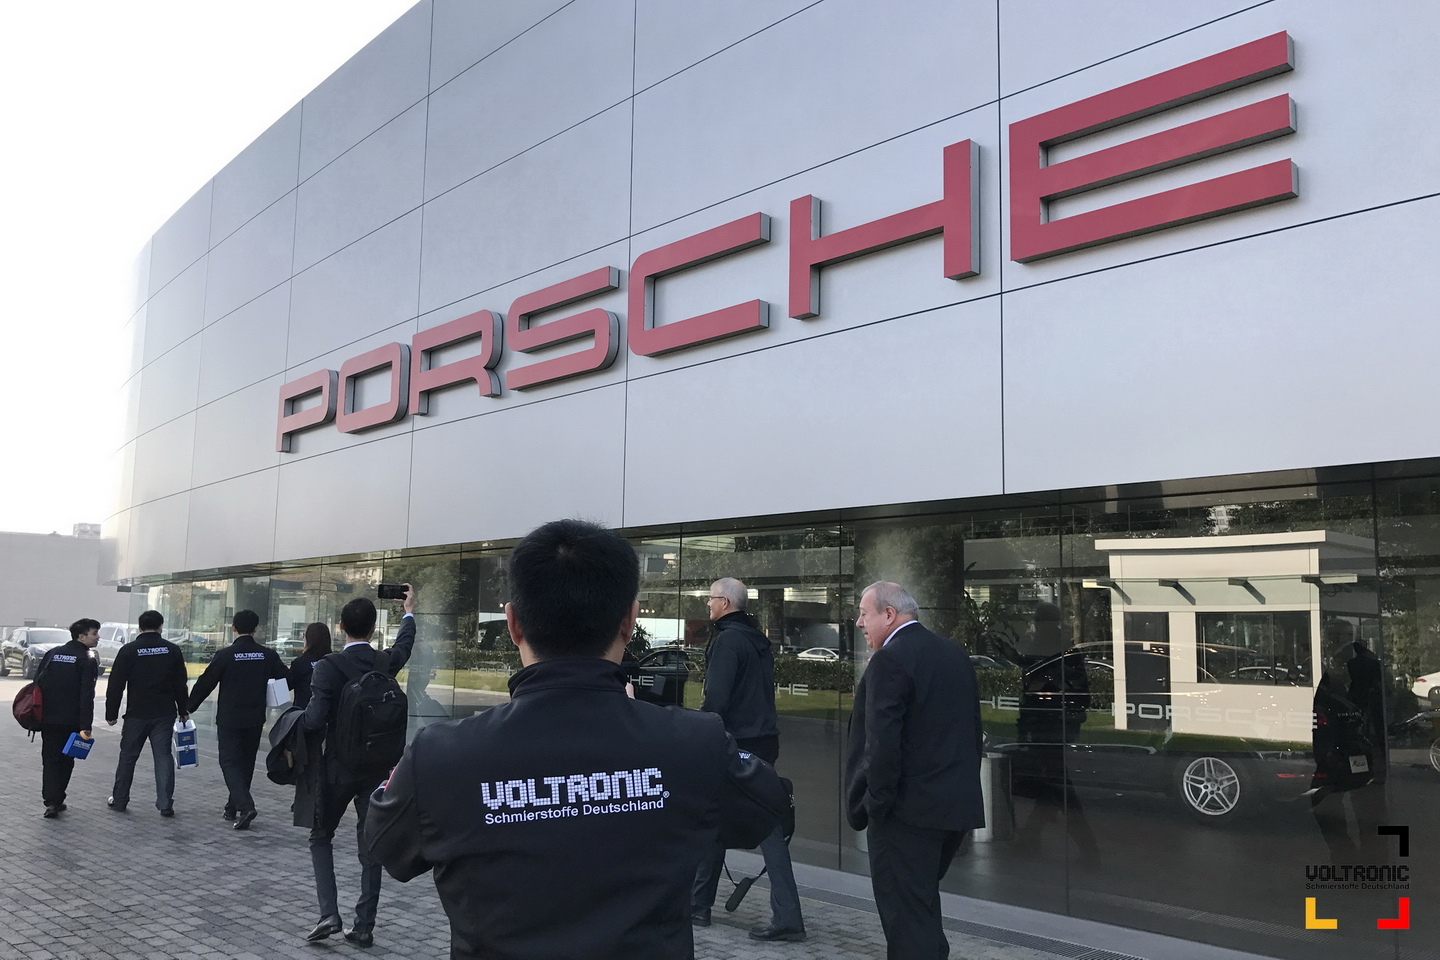 VOLTRONIC conduct training at Porsche Group